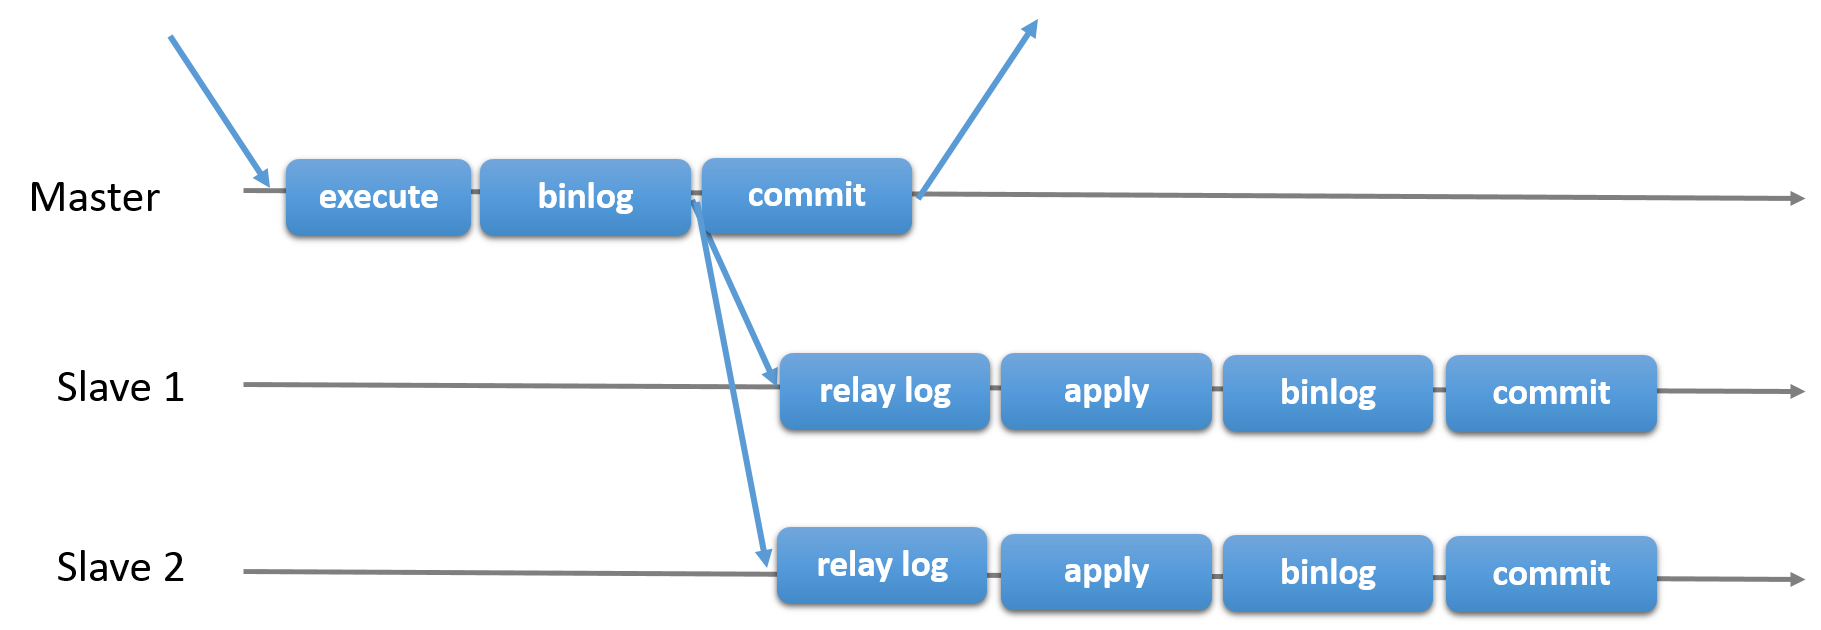 async-replication-diagram.png-80.3kB